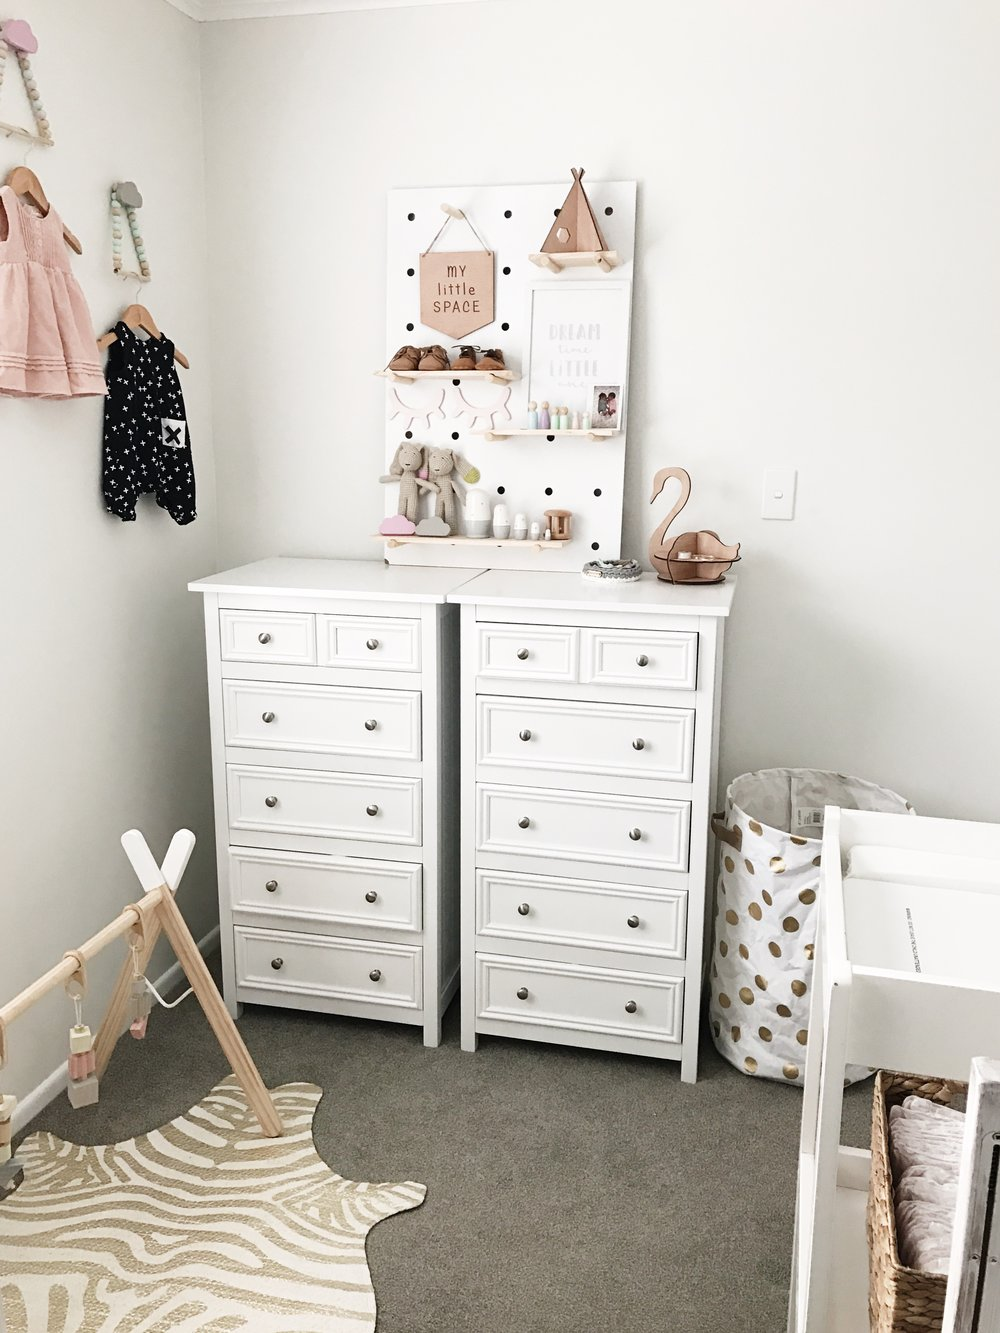 Our Drawers Are From Victors Furniture And Our Change Table Is From Trade  Me, The Framed Dream Catcher Print Is From Farmers. Everything Else You See  In The ...